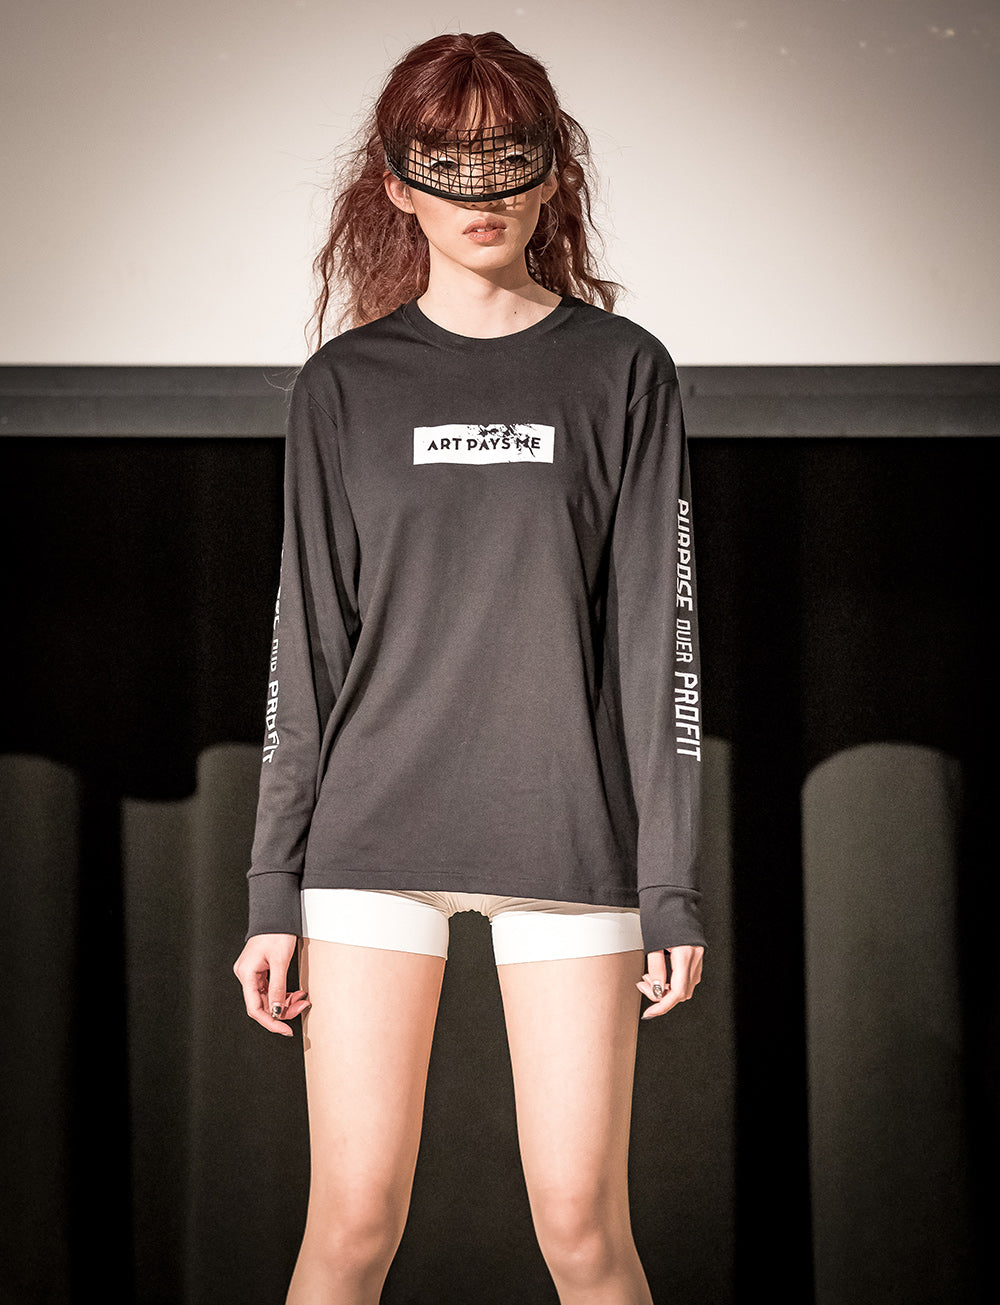 Purpose Profit Long Sleeve T-Shirt Black at Moments In Culture, shot by Lens Method.